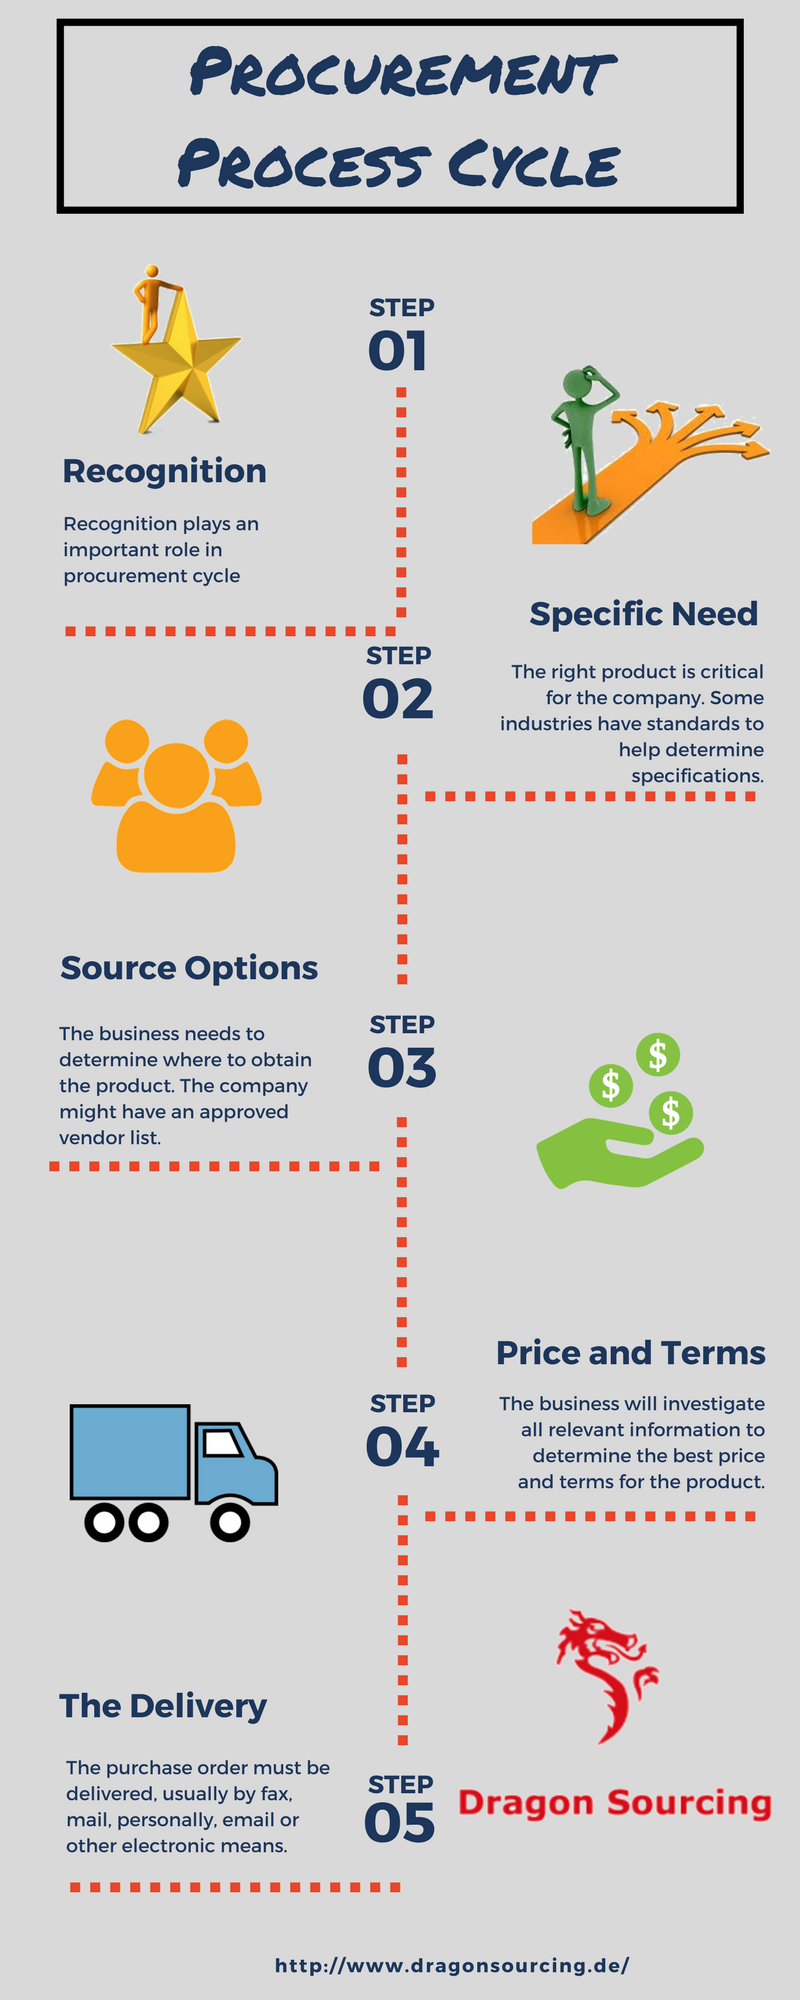 The 25 best procurement process ideas on pinterest process the 25 best procurement process ideas on pinterest process control process flow diagram and work flow chart nvjuhfo Choice Image